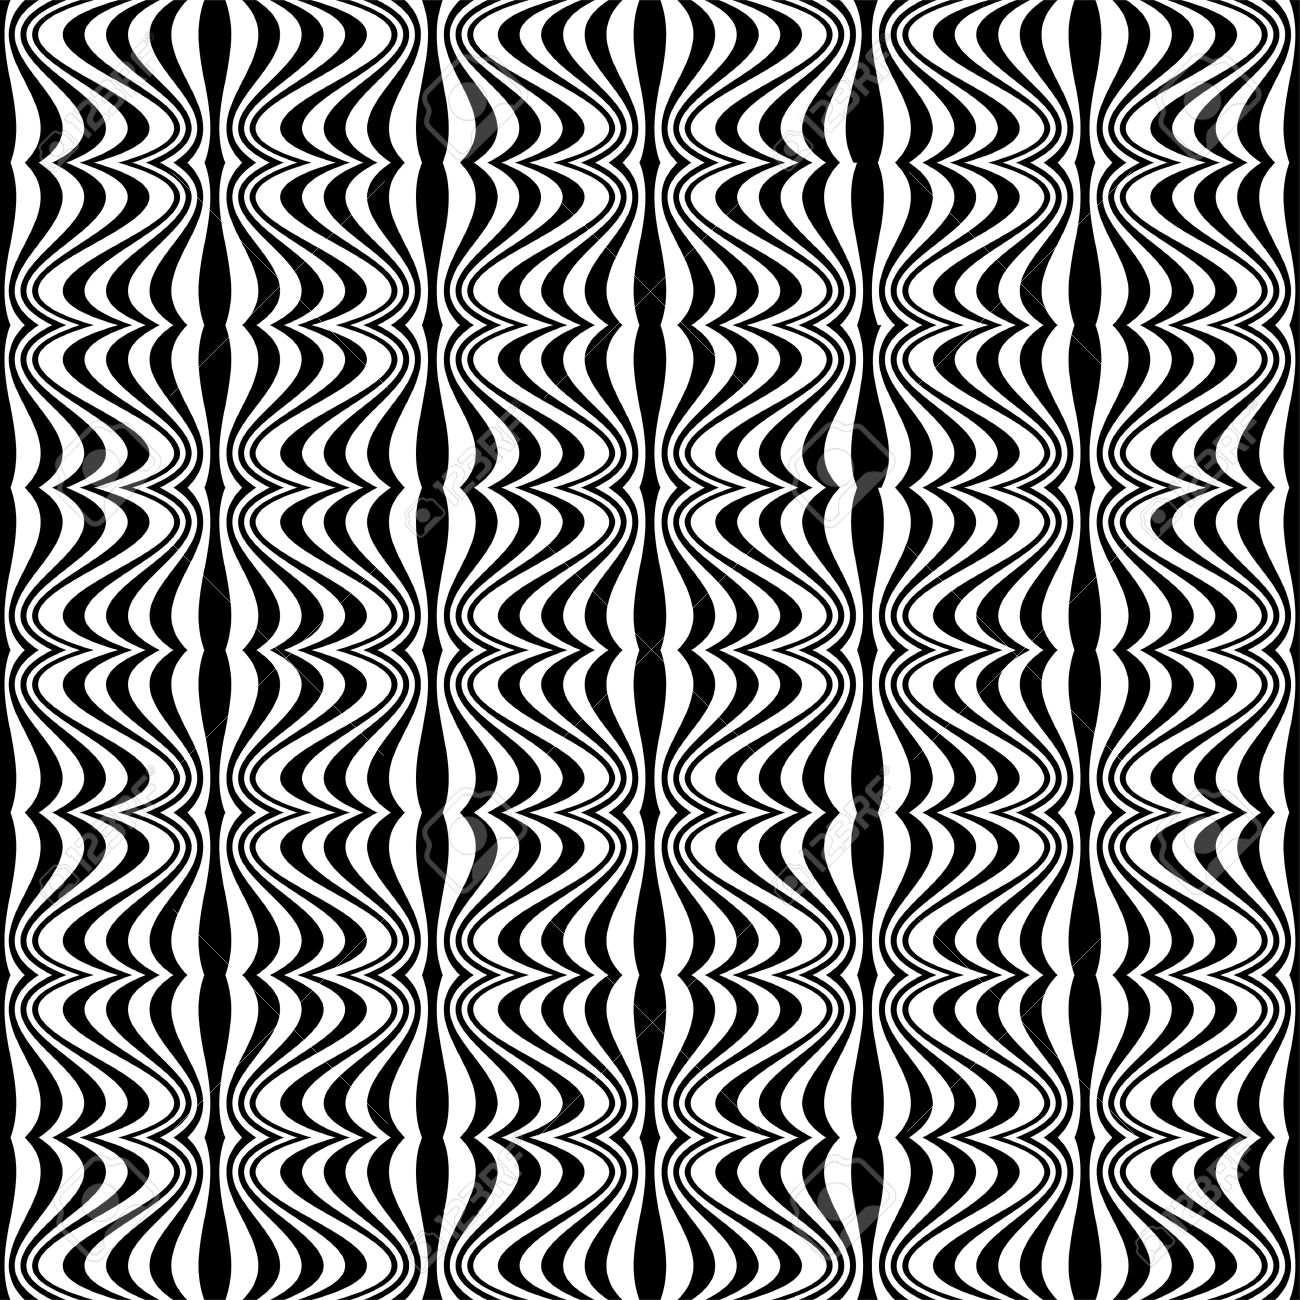 Pattern - Optical illusion with geometric drawing Stock Vector - 18218838